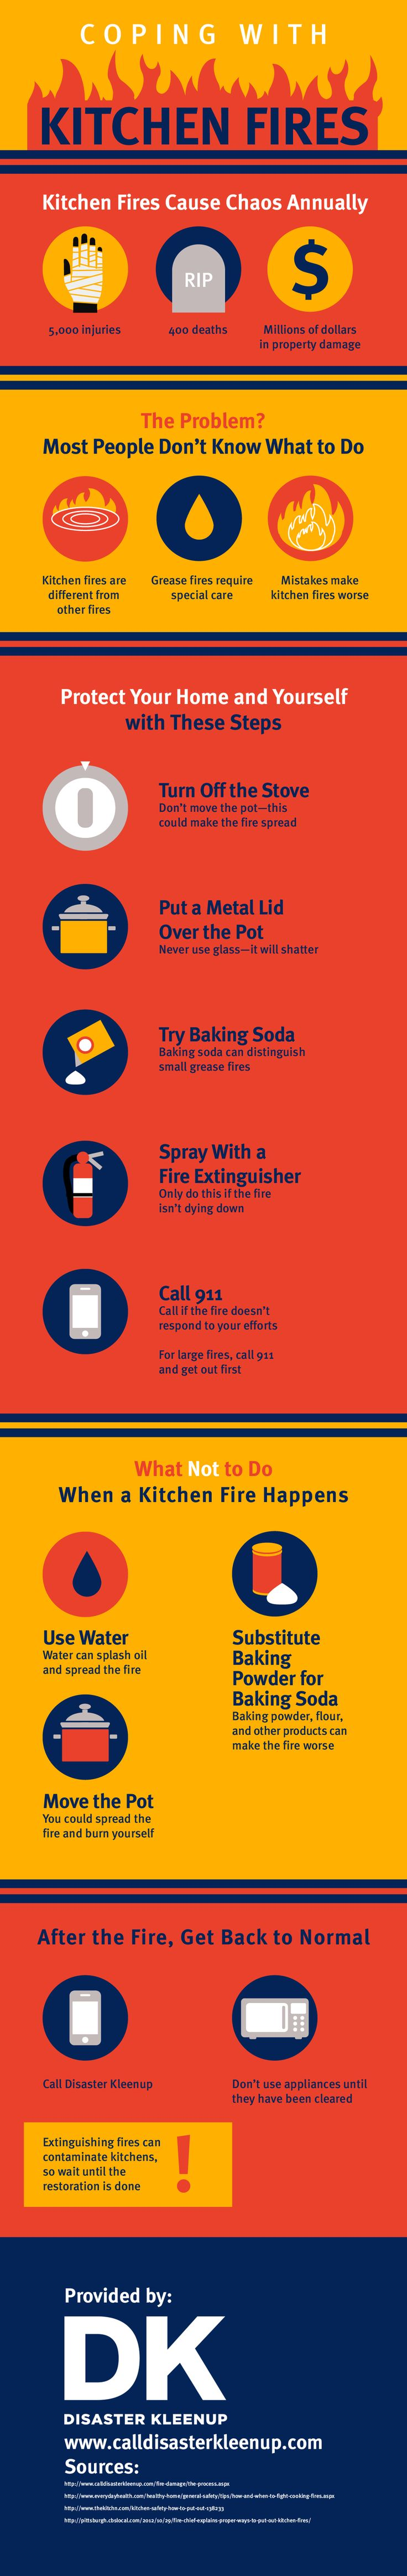 In the event of a kitchen fire, refrain from using water to try putting the…